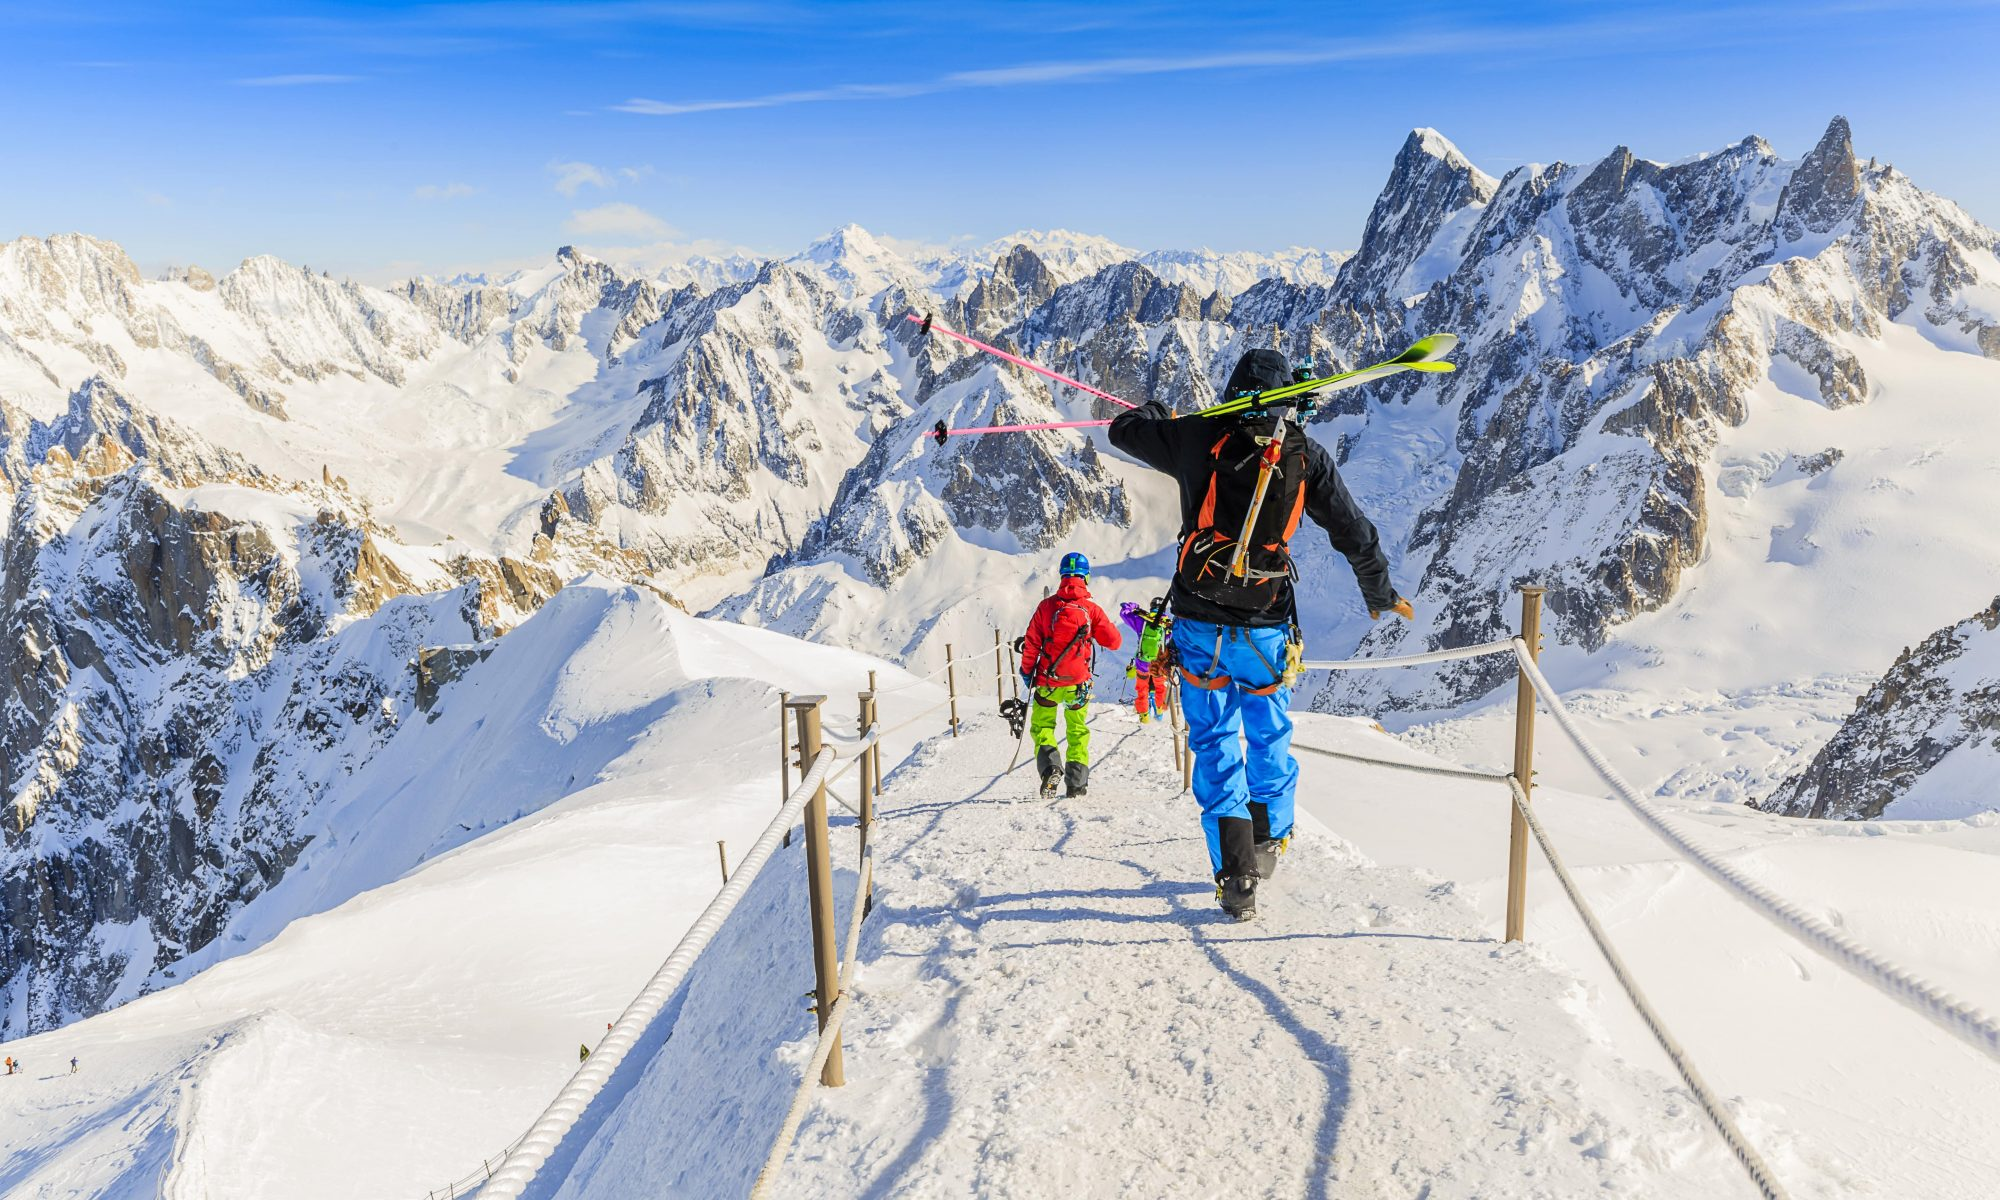 Two skiers are about to start a day of skiing in Chamonix.